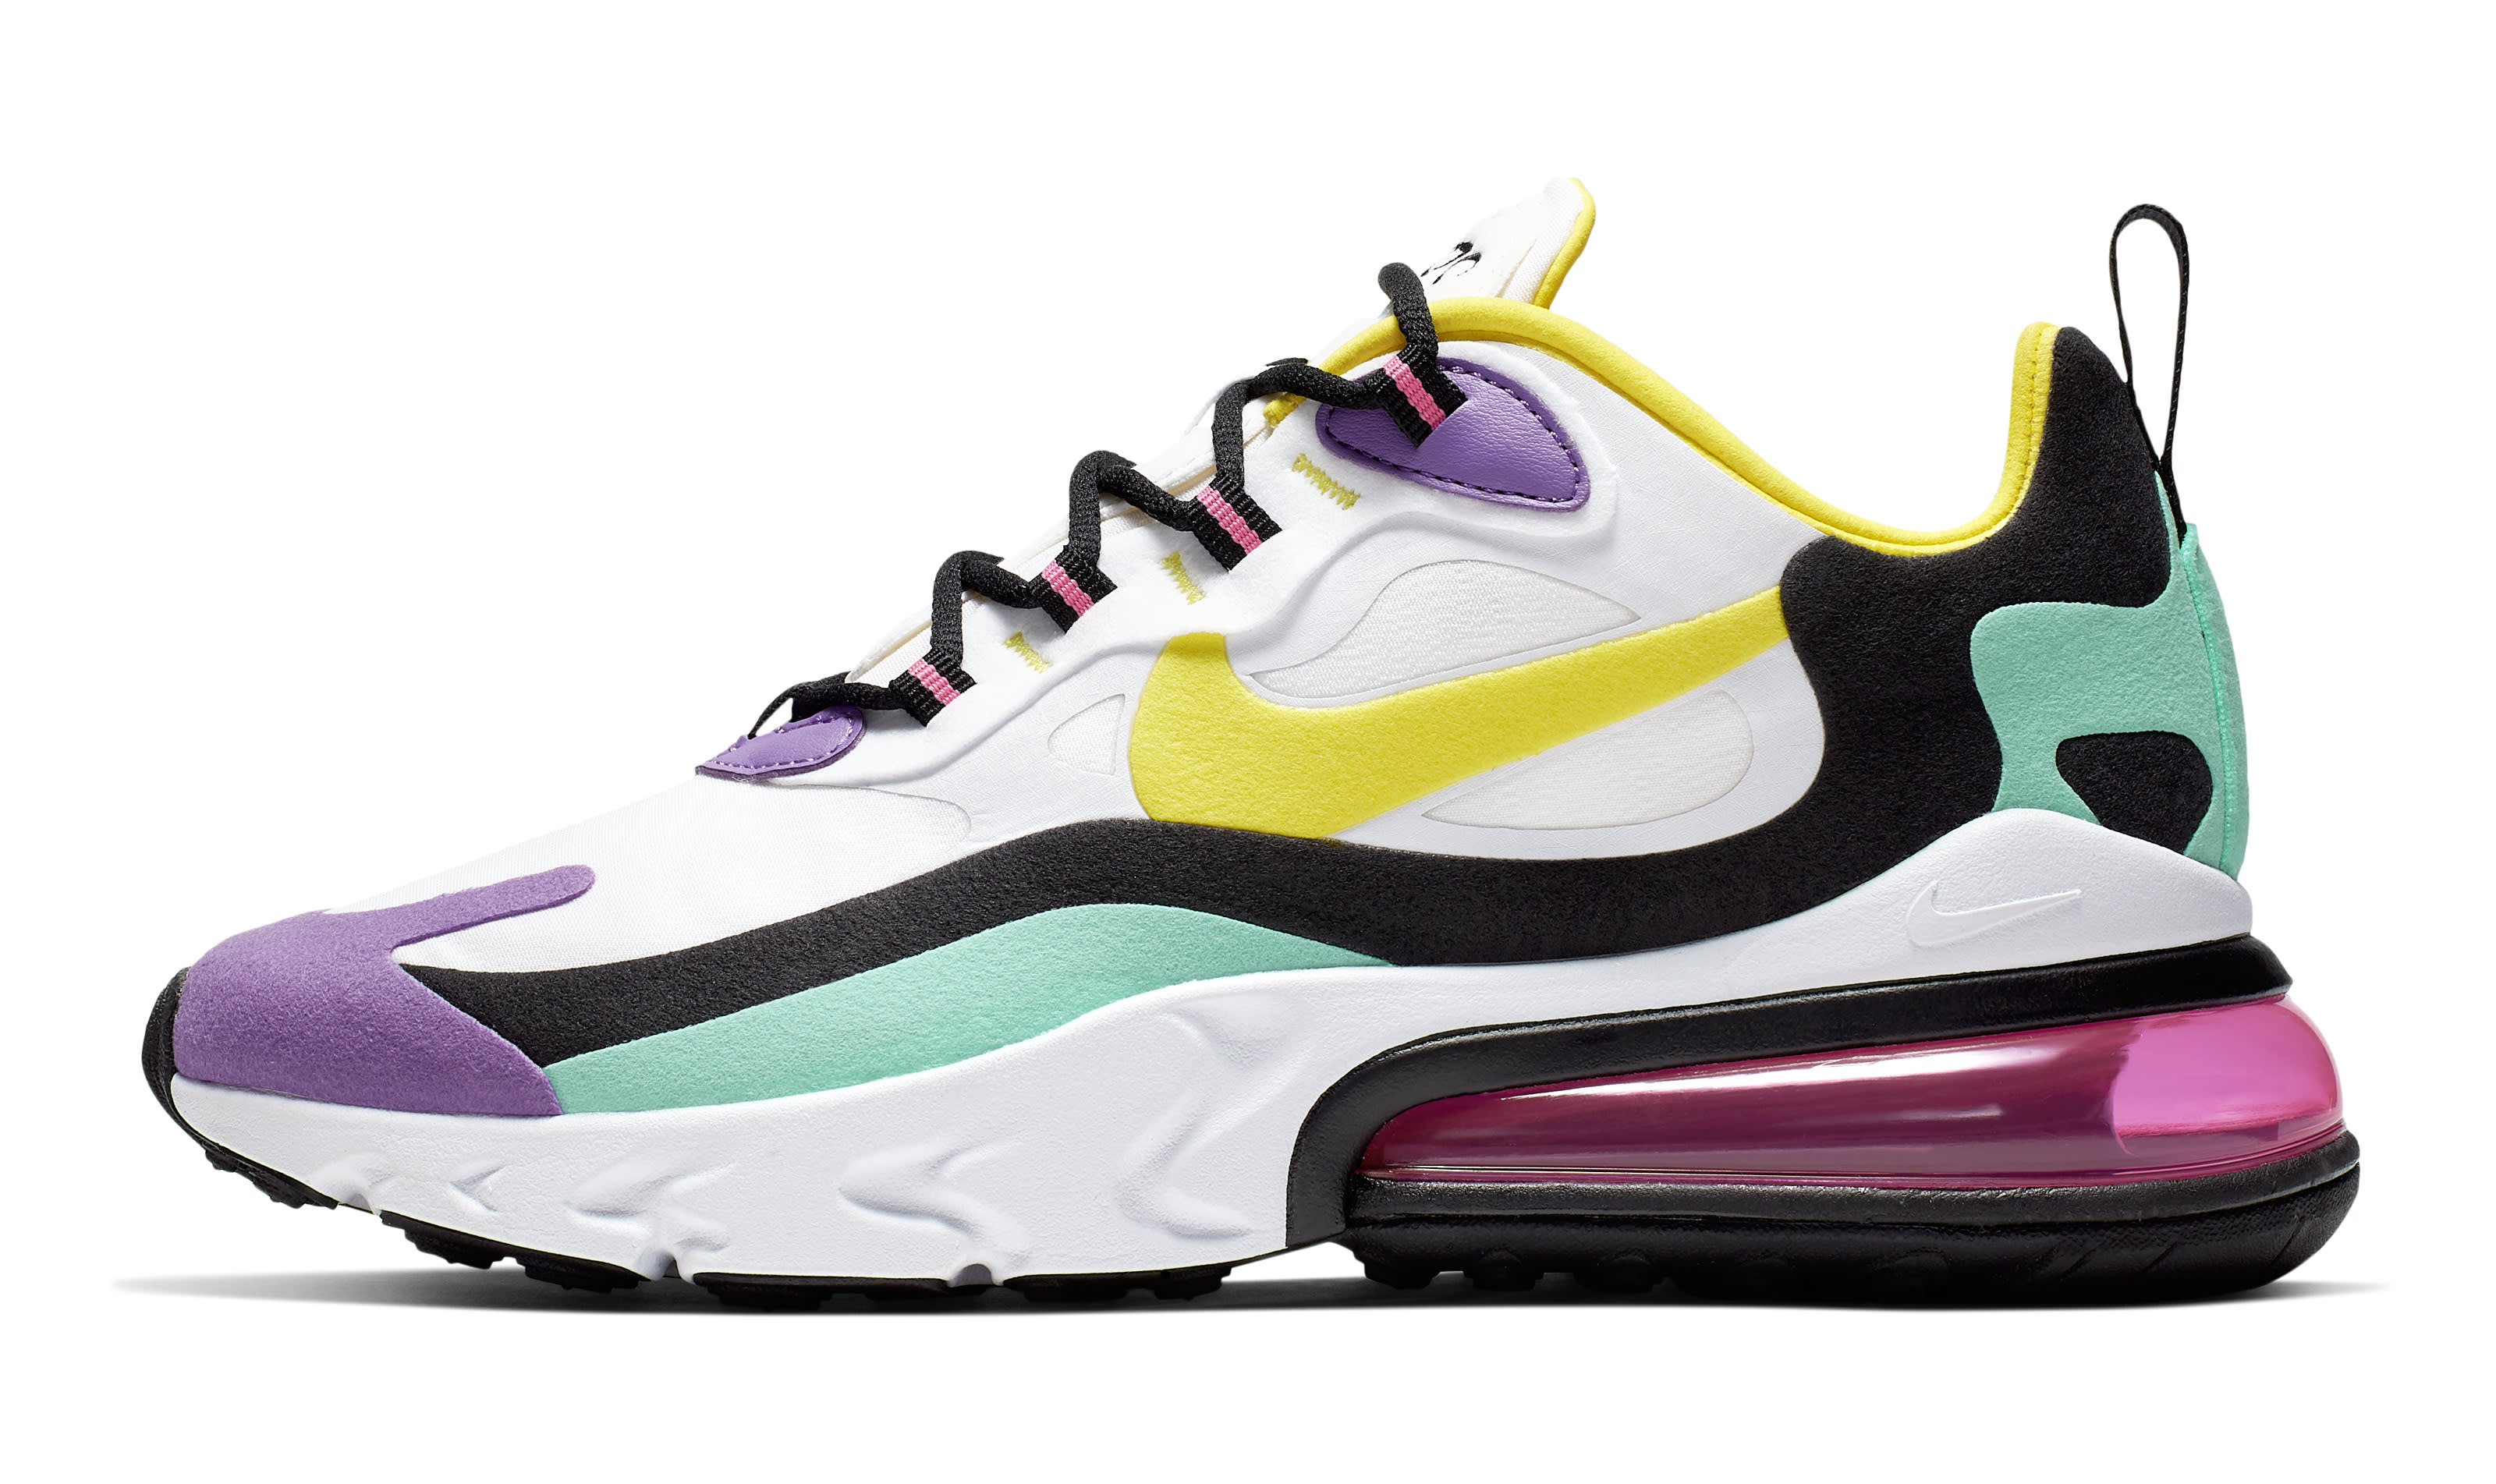 Nike's Air Max 720 Just Got Its Full, Official Reveal Air